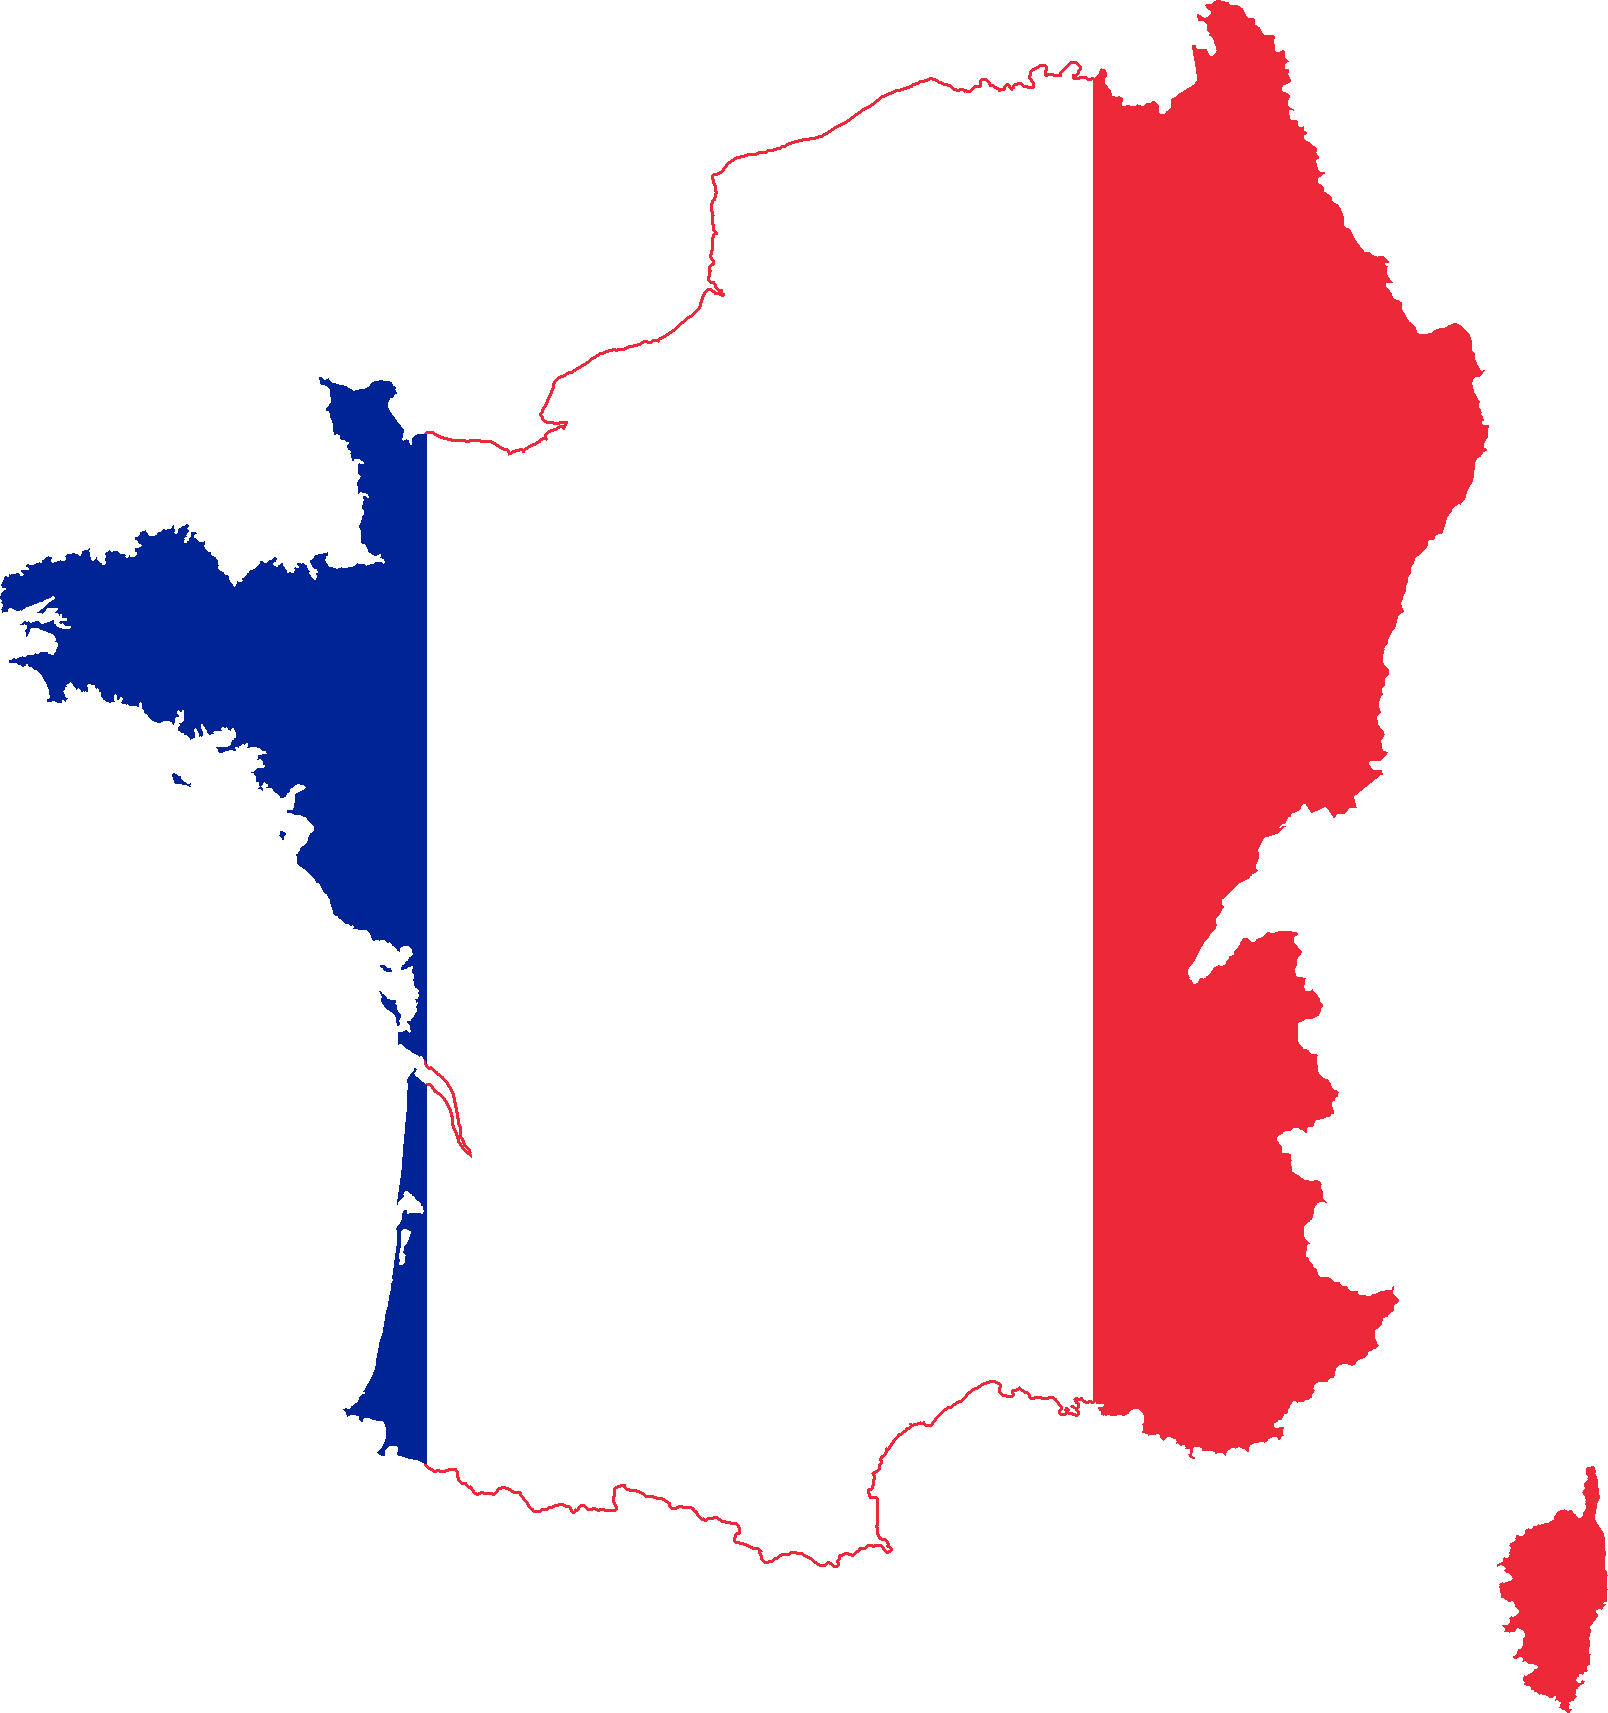 France map png. Download clipart french flag